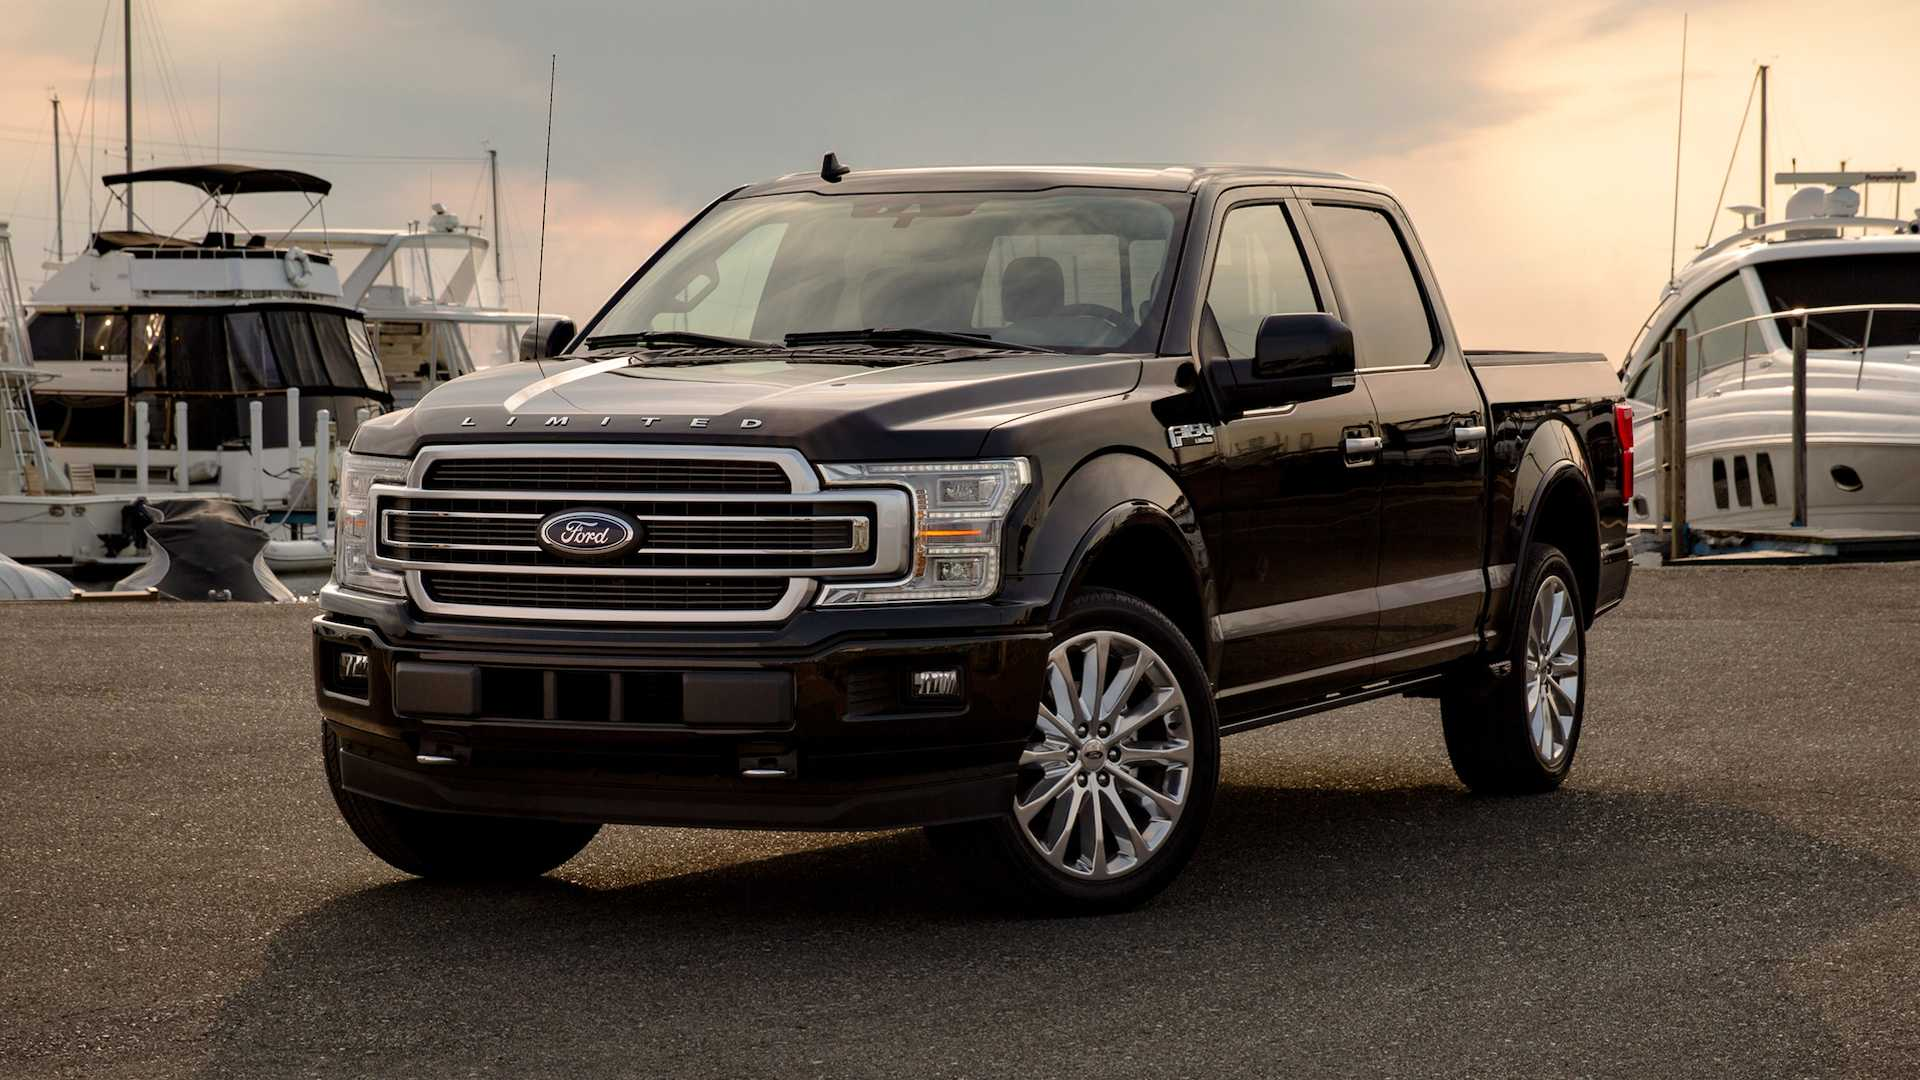 57 All New 2019 Ford Production Schedule Rumors